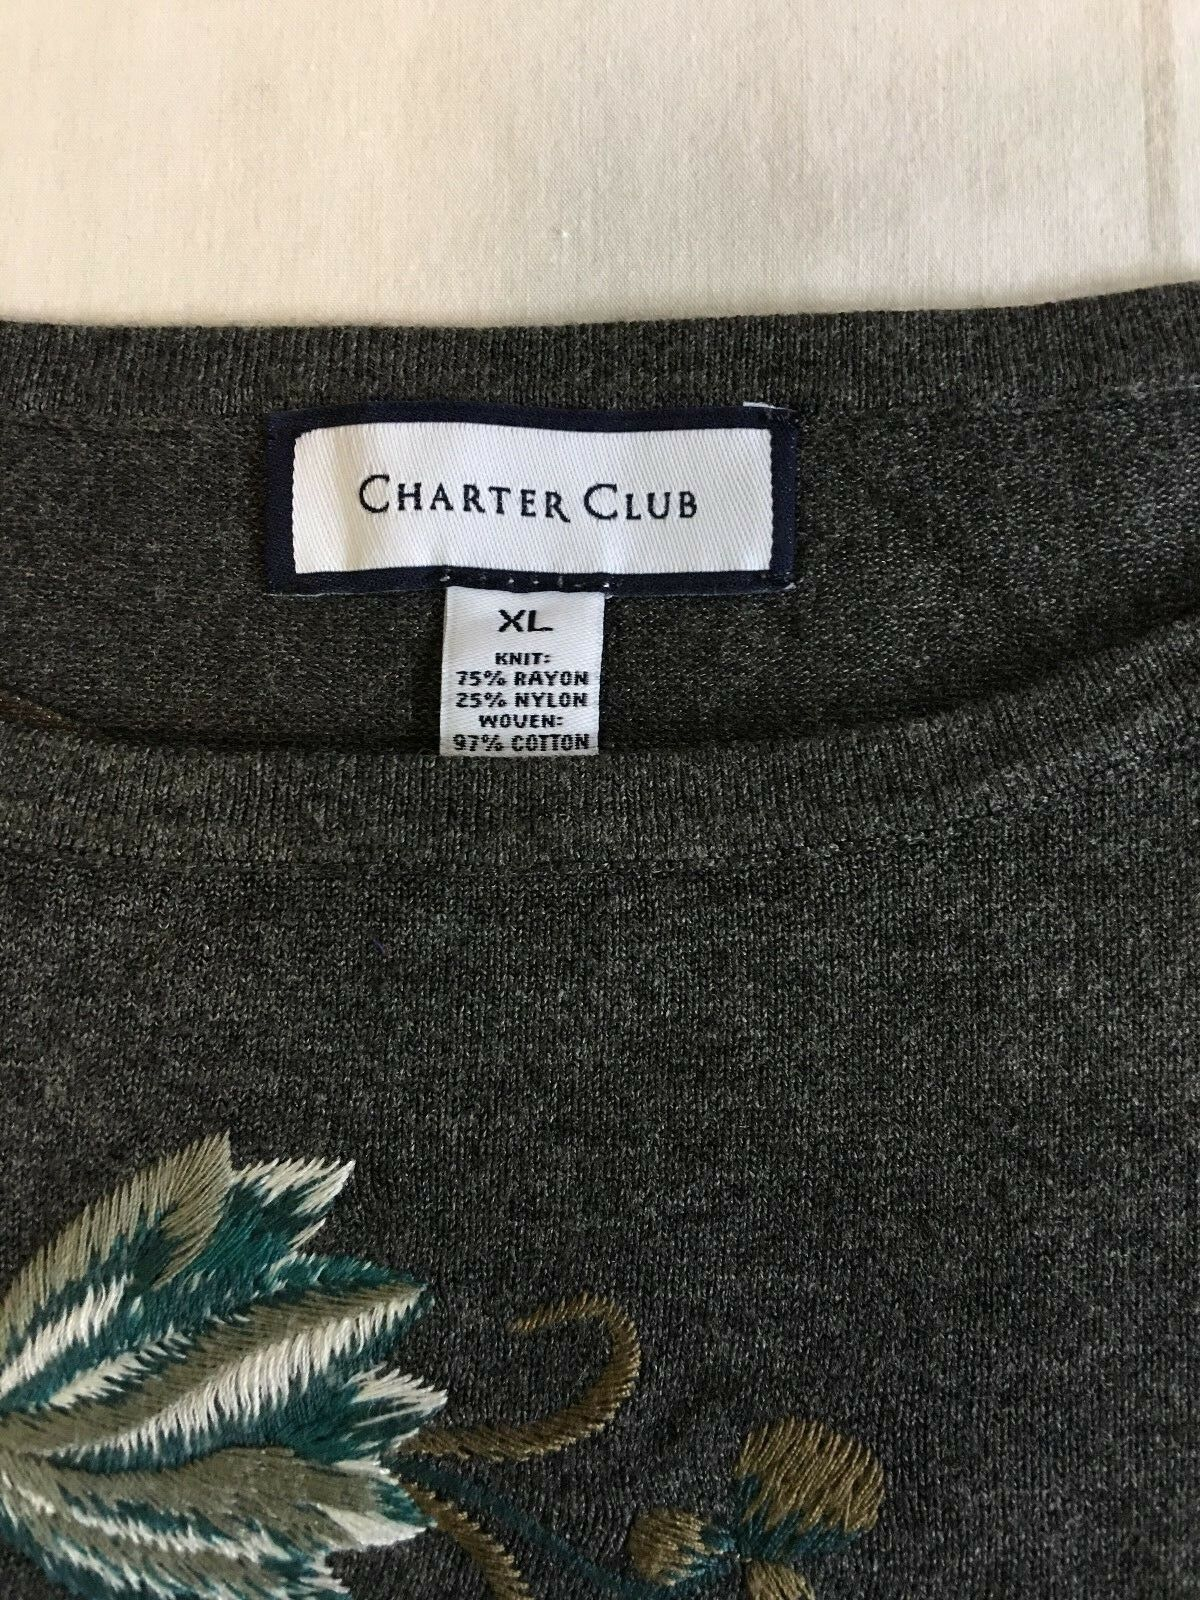 Charter Club  79 Women's Layered Look Embroidered Embroidered Embroidered Long Sleeve Sweater, XL Grey 87143d